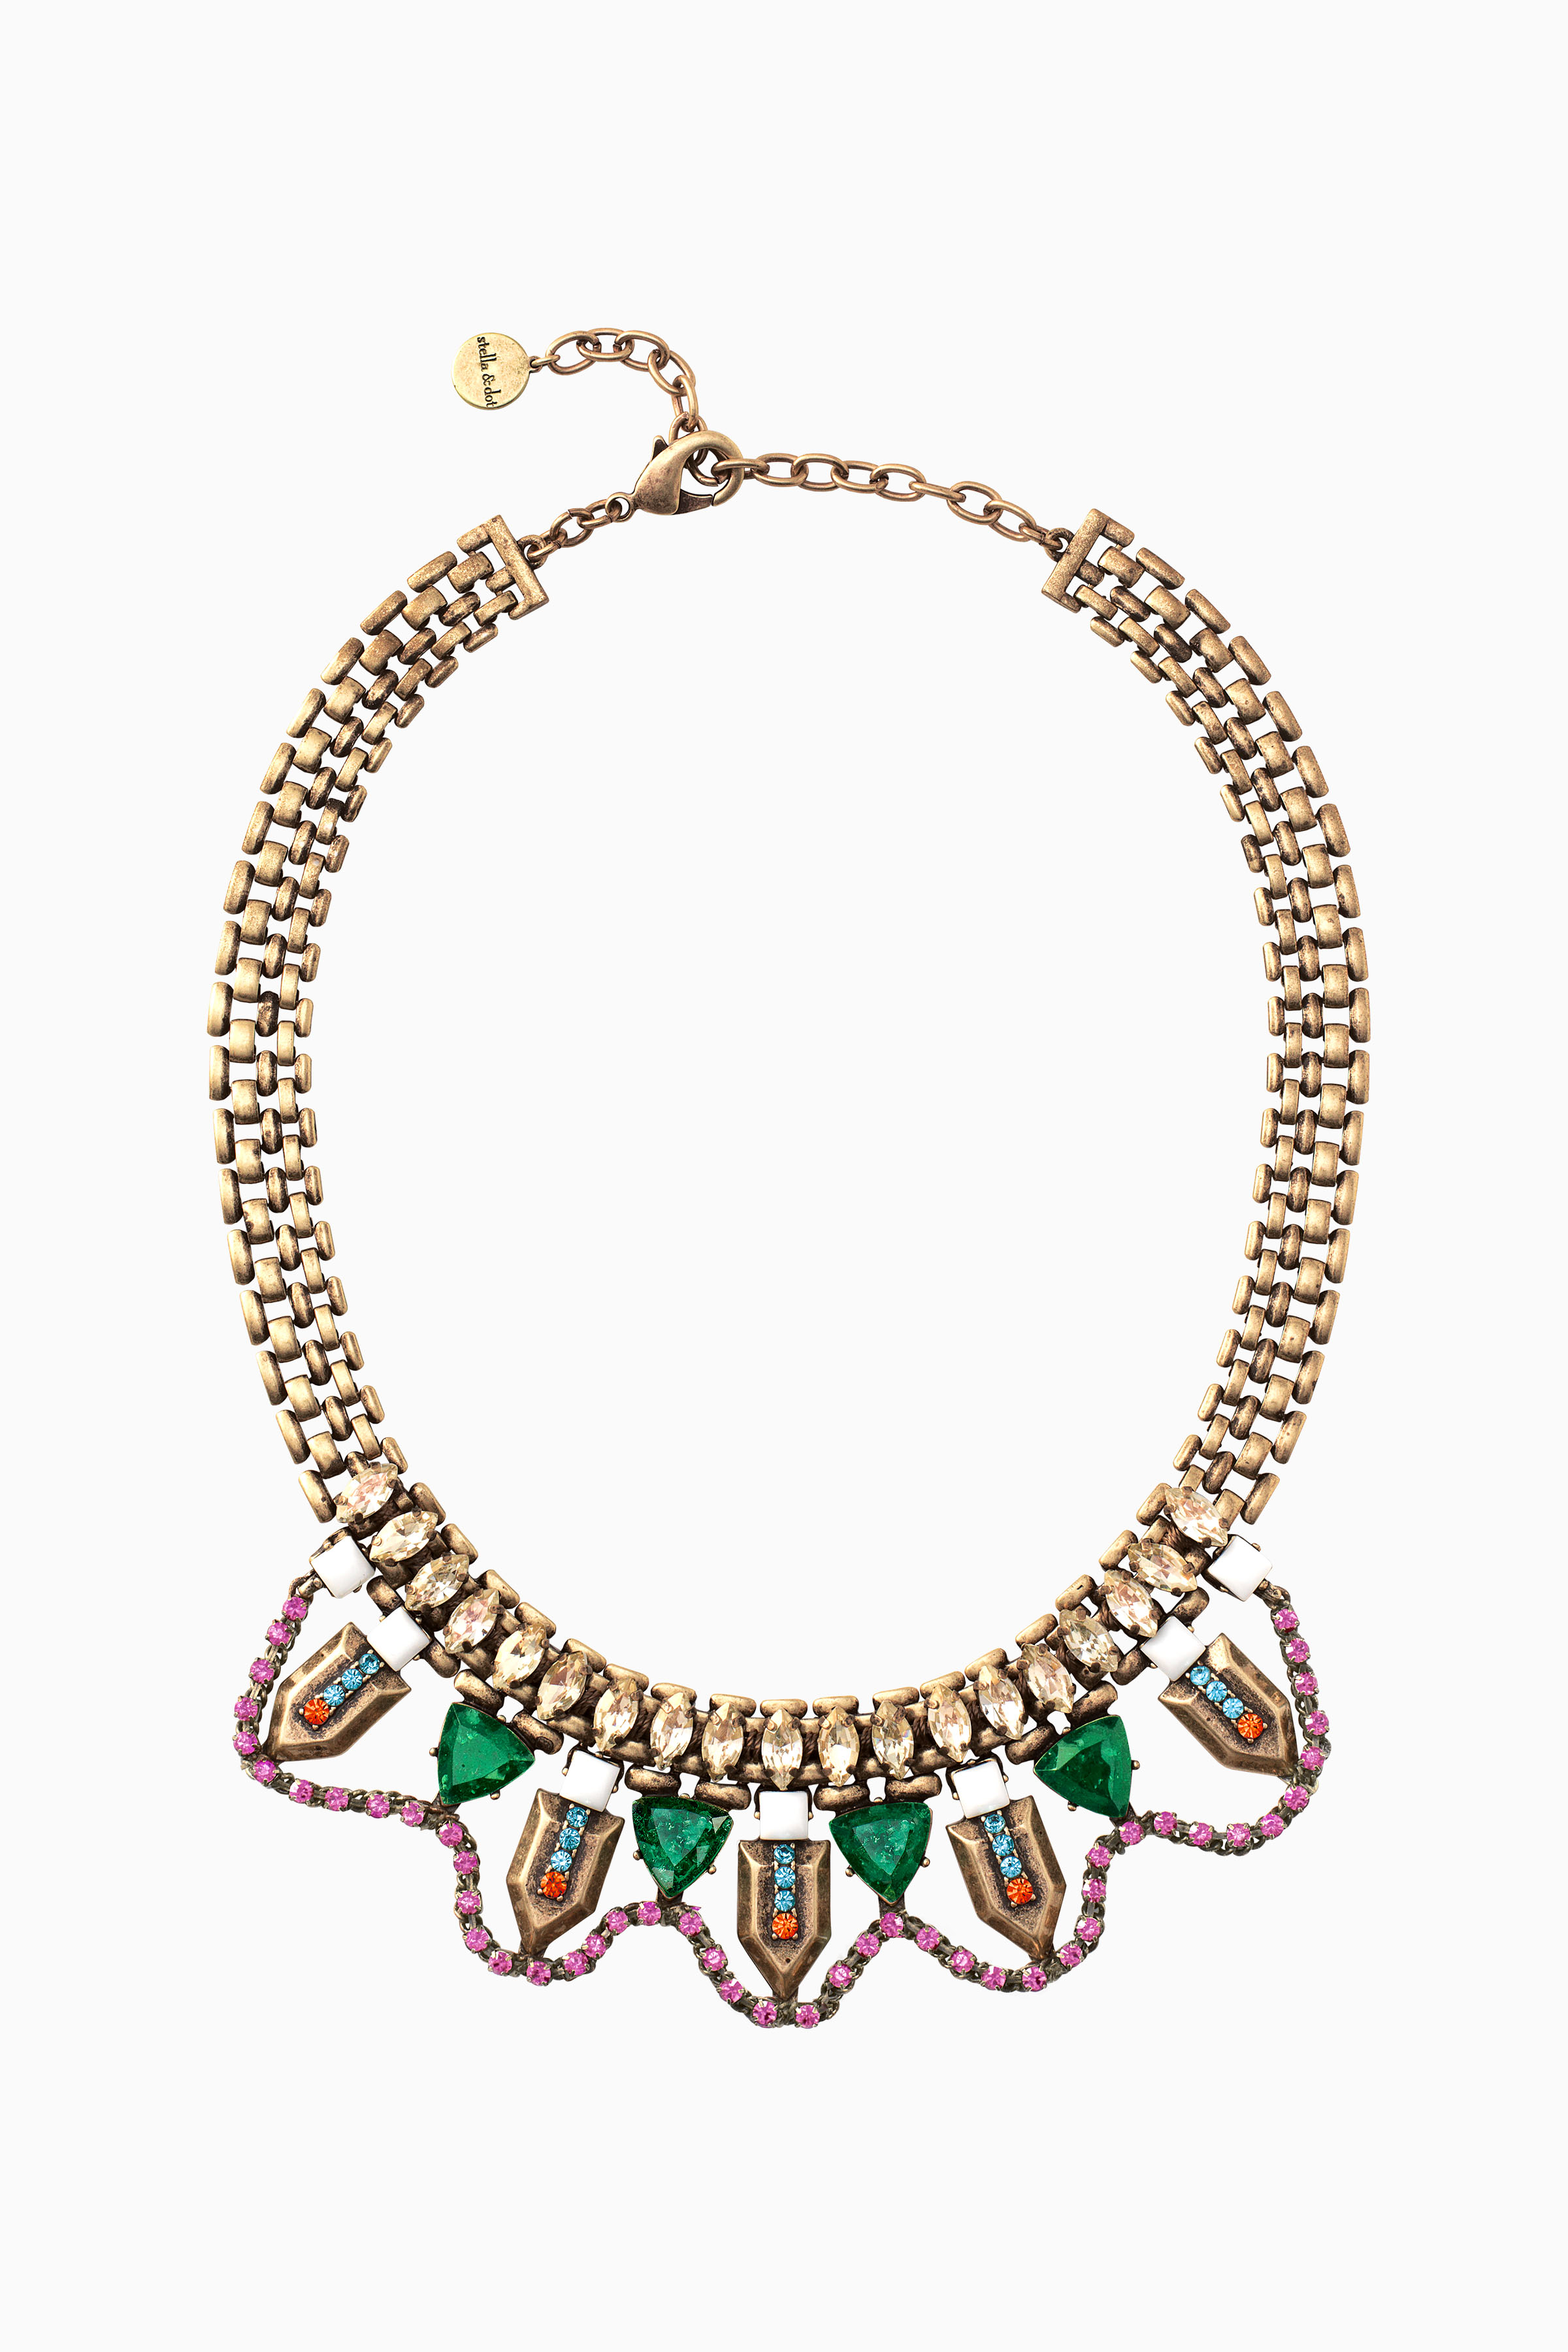 Stella & Dot gift guide - prisma statement necklace